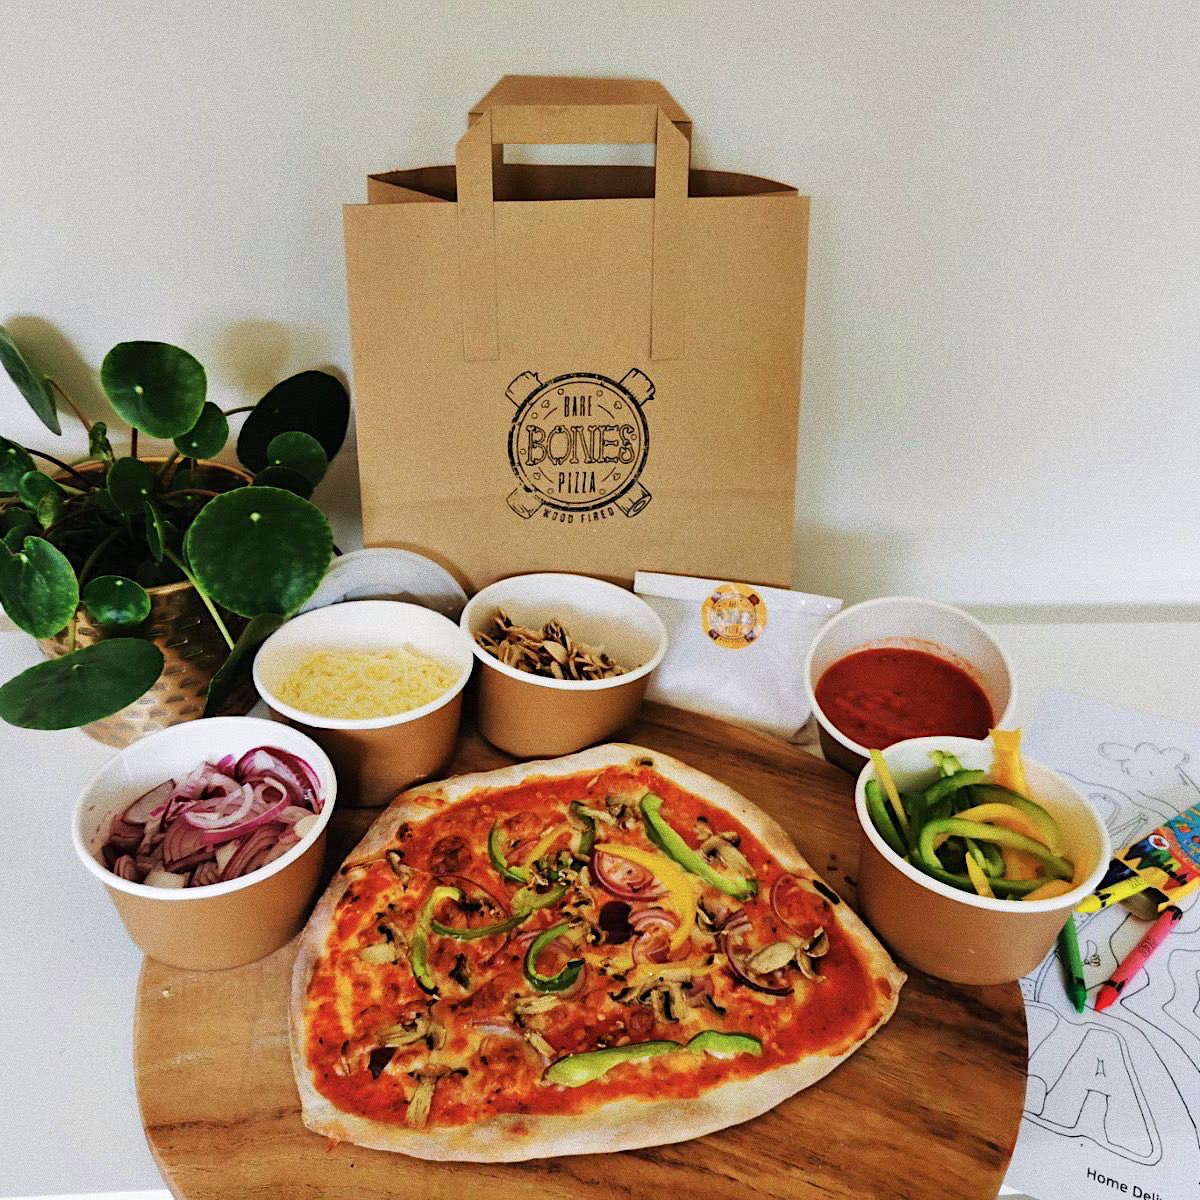 DIY Pizza kits Home Delivery - From £5 per Pizza (makes 4)